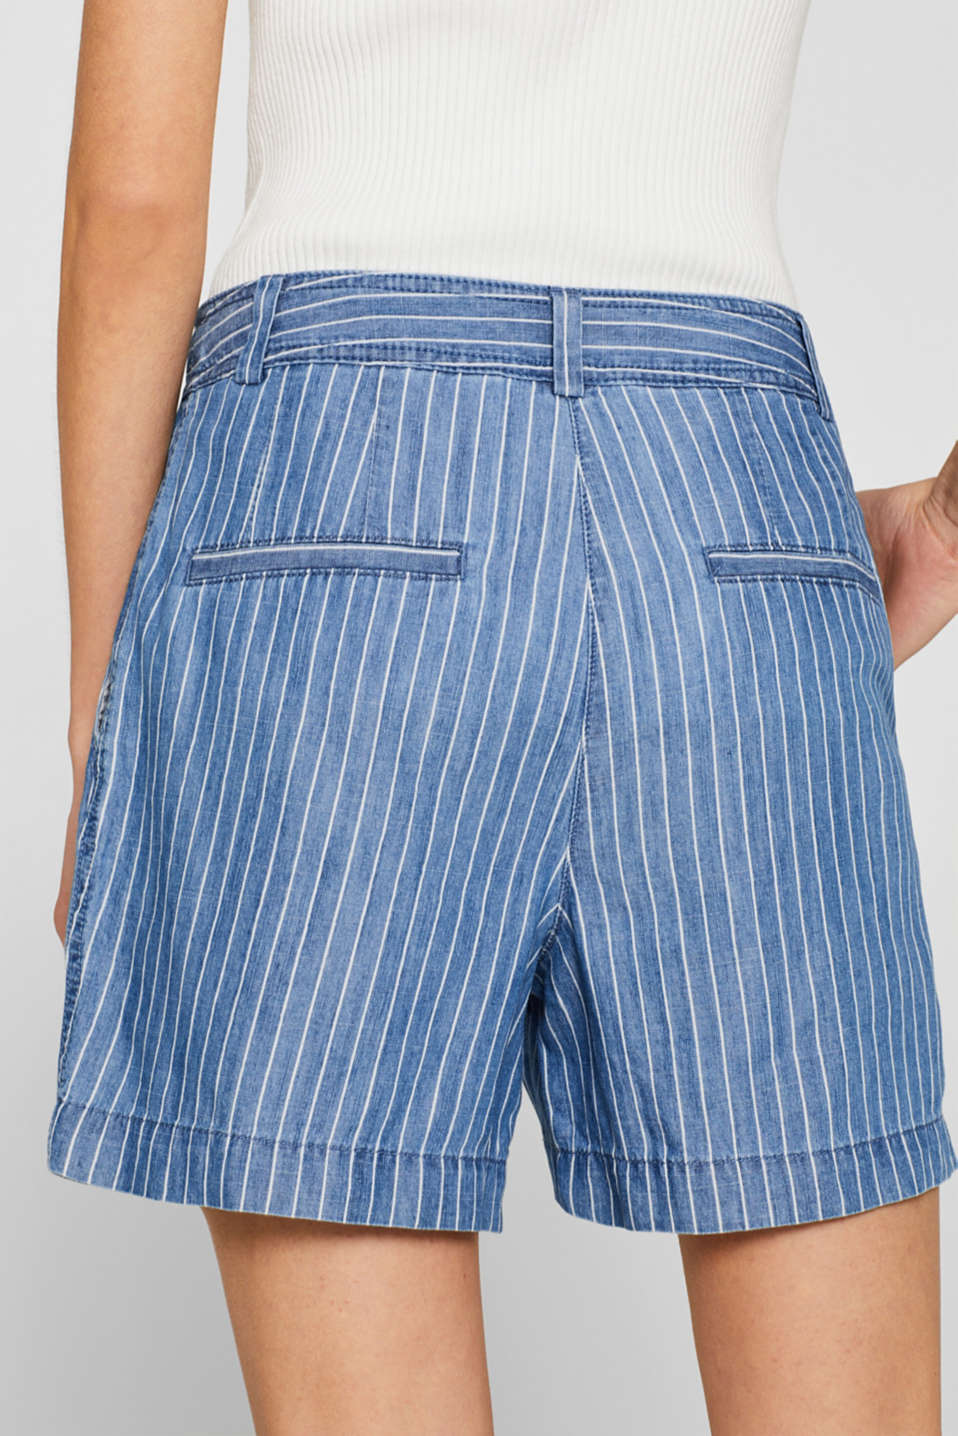 Striped, denim-effect shorts made of blended lyocell, GREY BLUE, detail image number 5